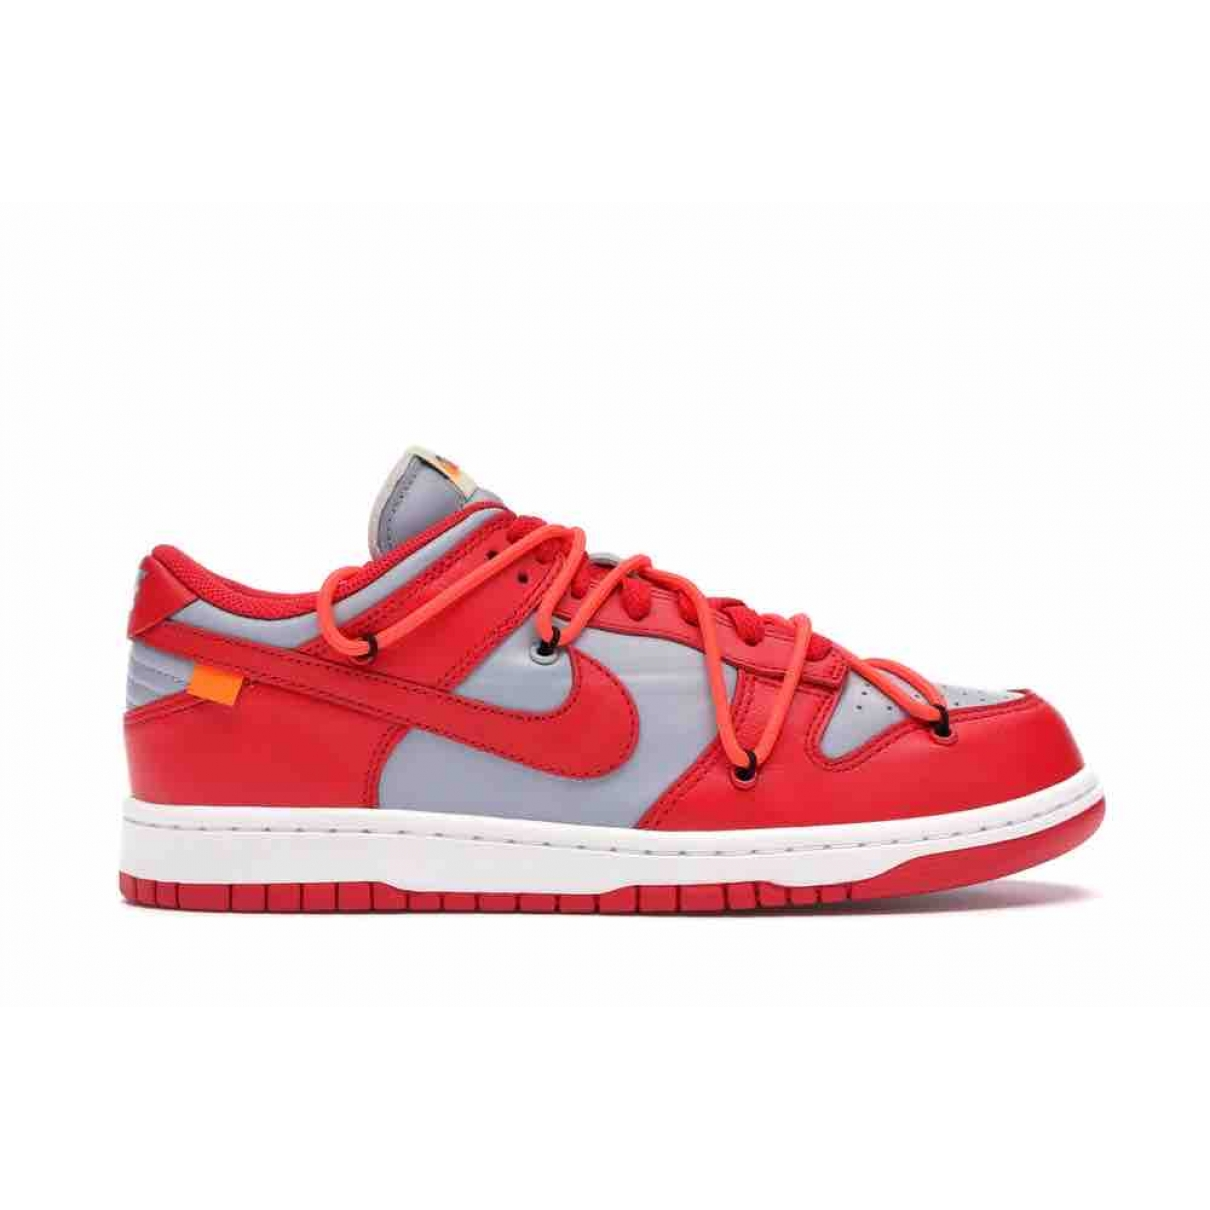 Nike X Off-white - Baskets Dunk Low pour homme en toile - rouge